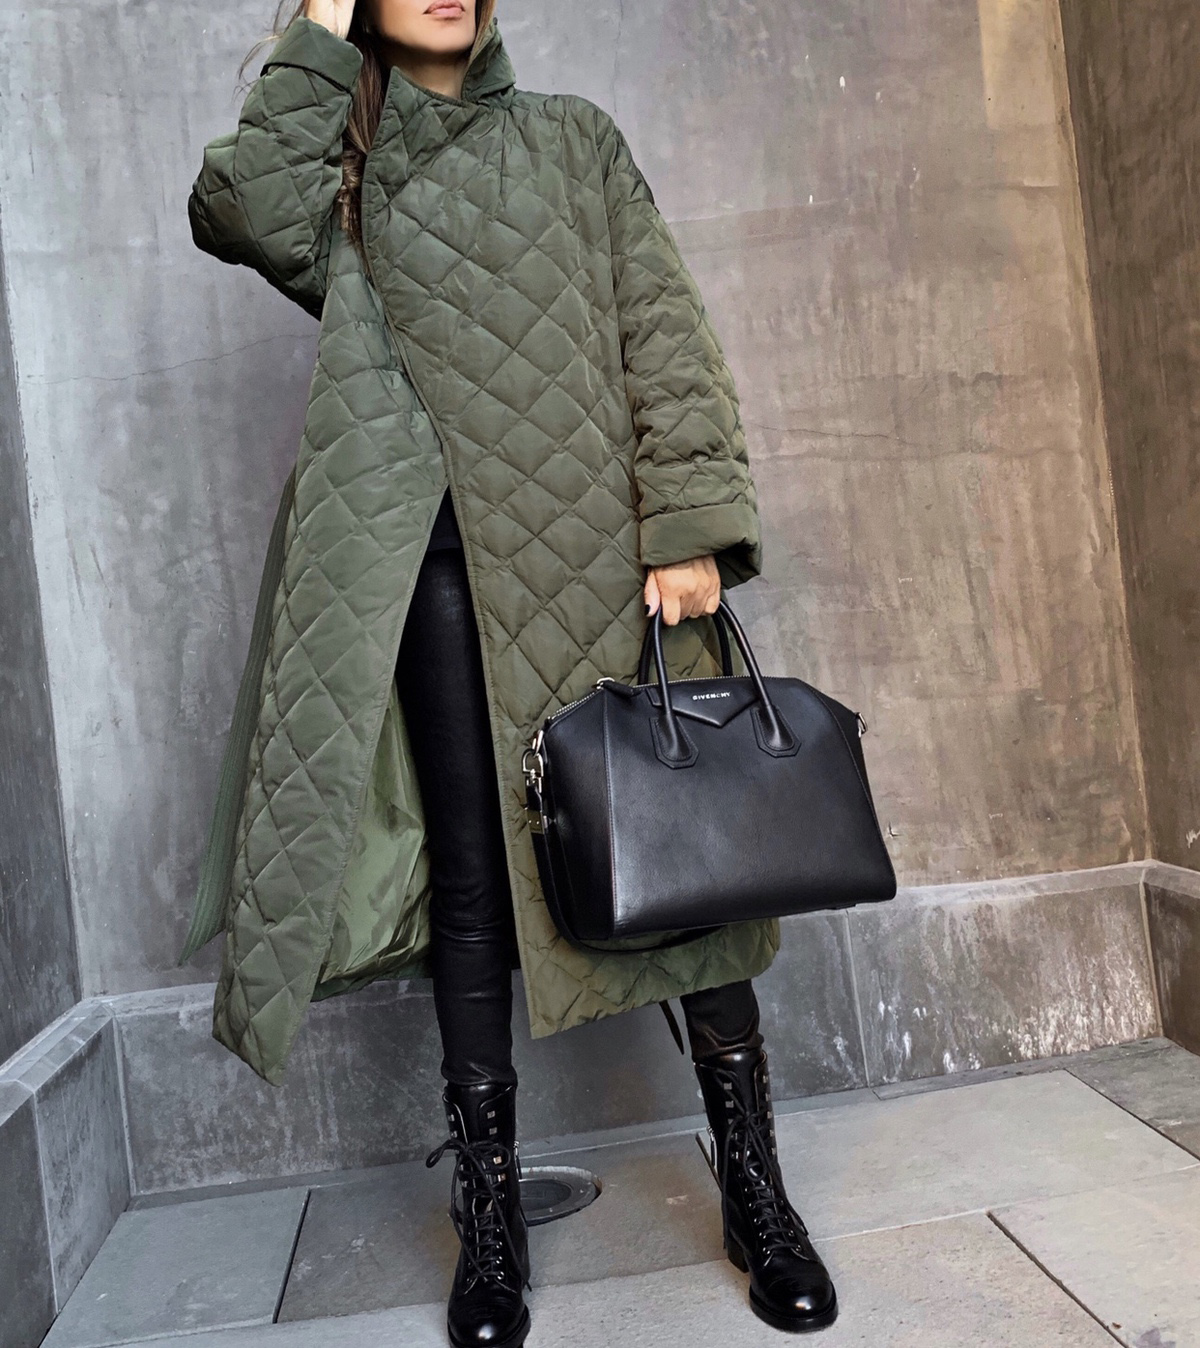 Coats Every Woman Should Own, quilted maxi coat, fall outfit inspiration by lolario style | lolariostyle.com